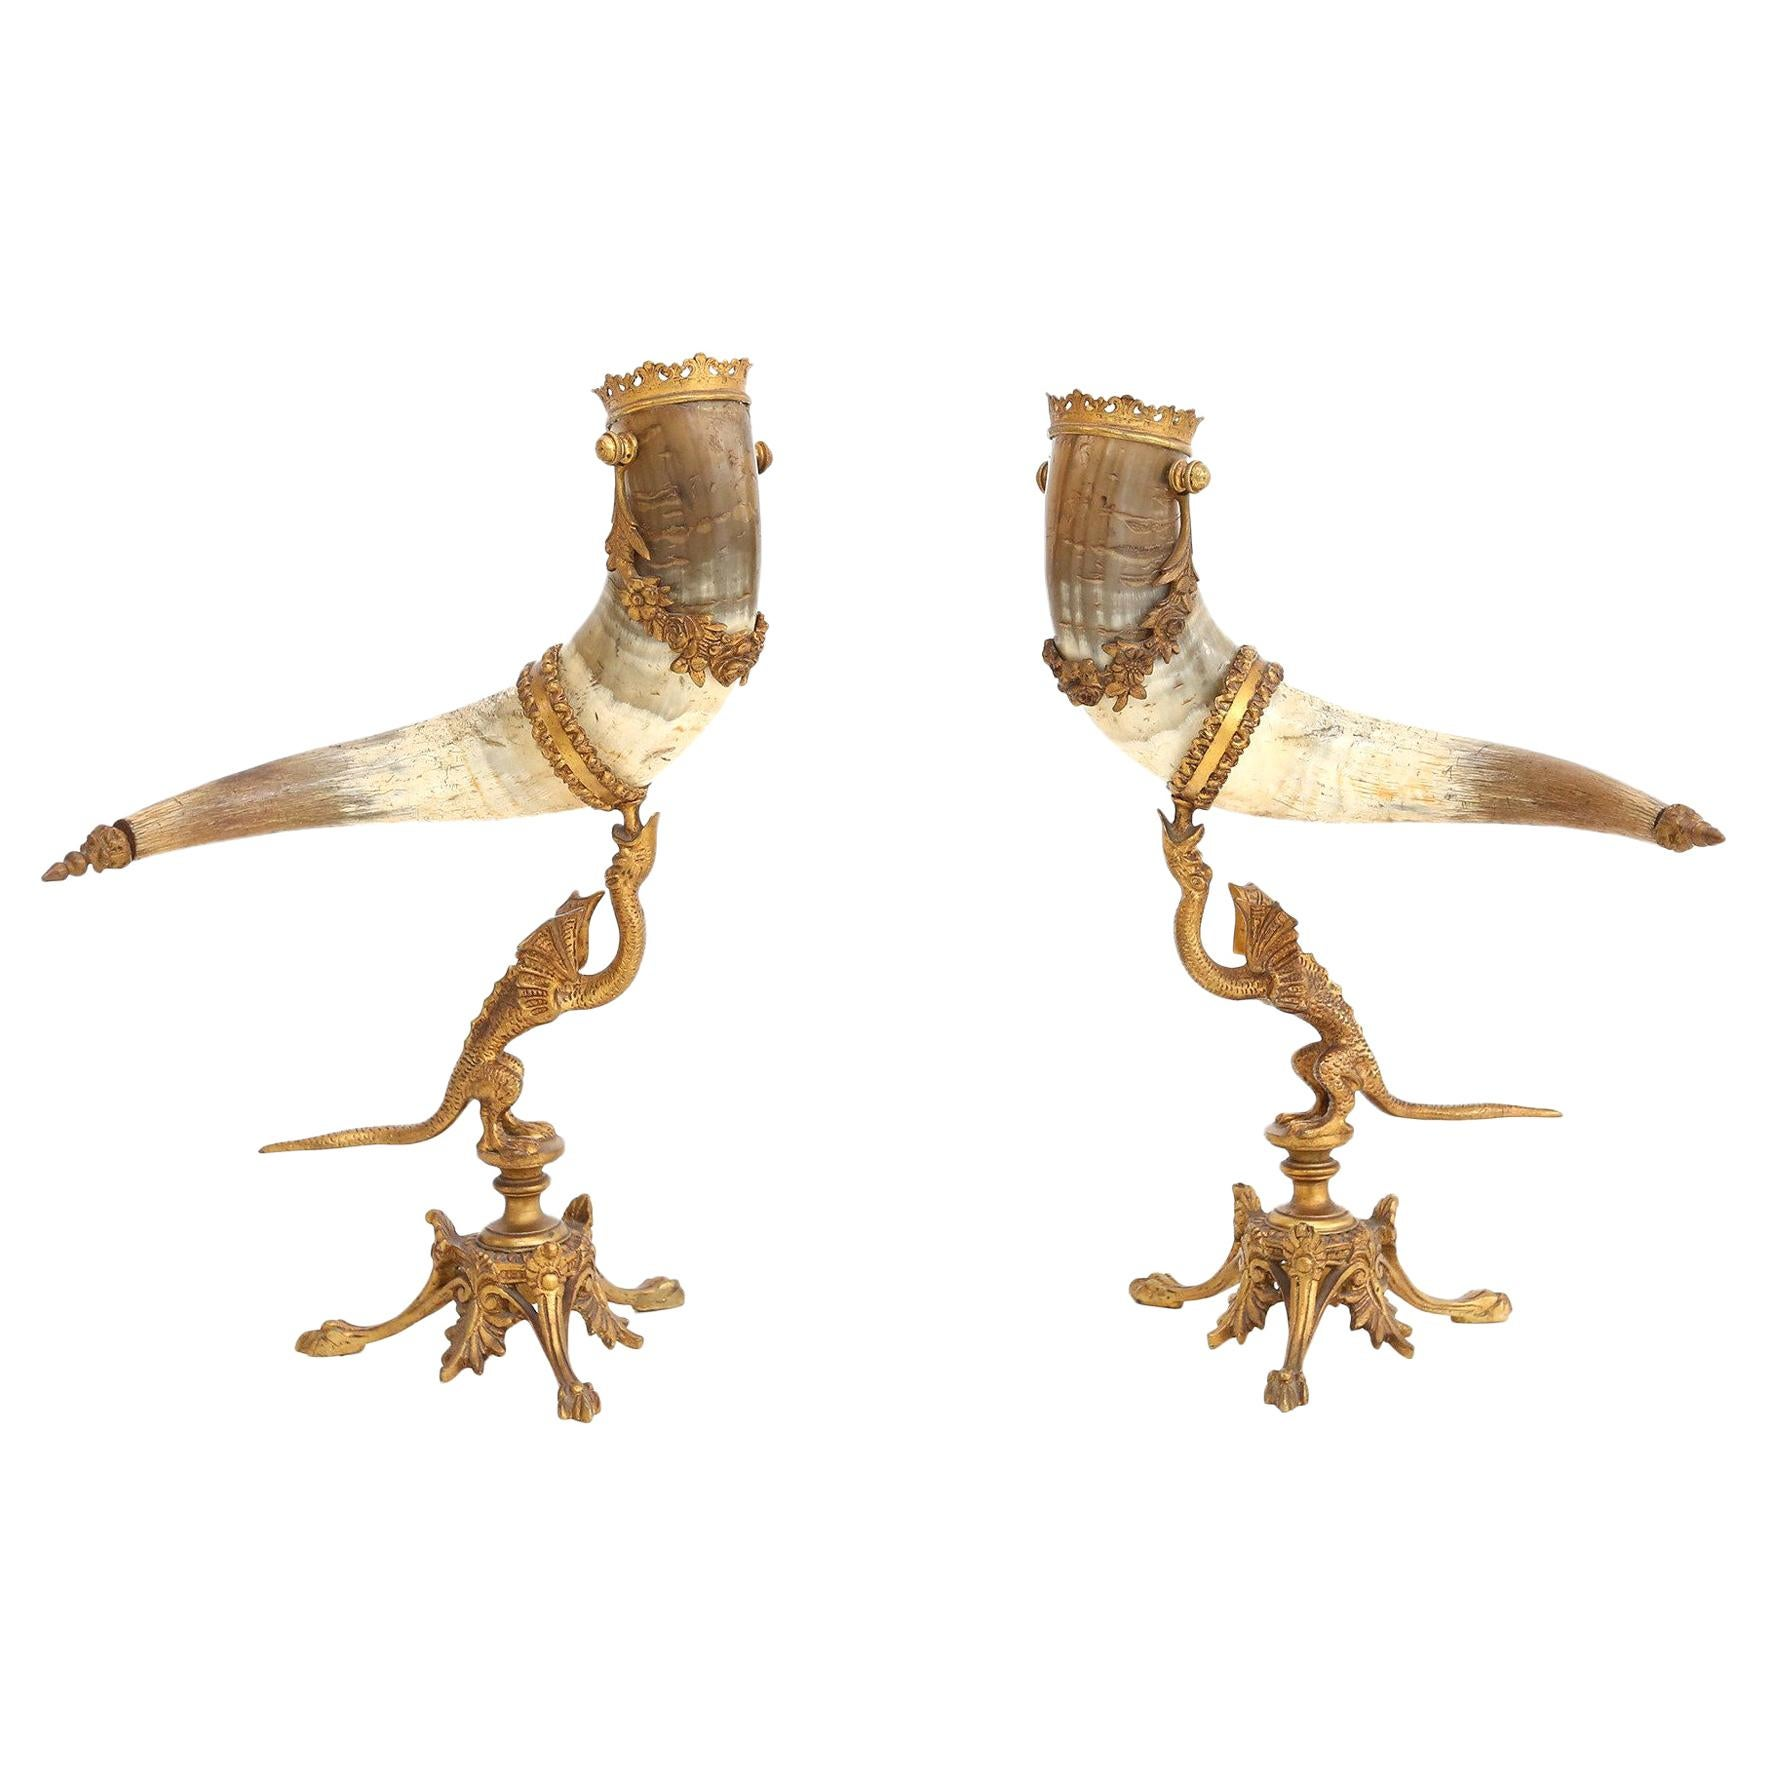 Decorative Antique Pair of Mounted Horns